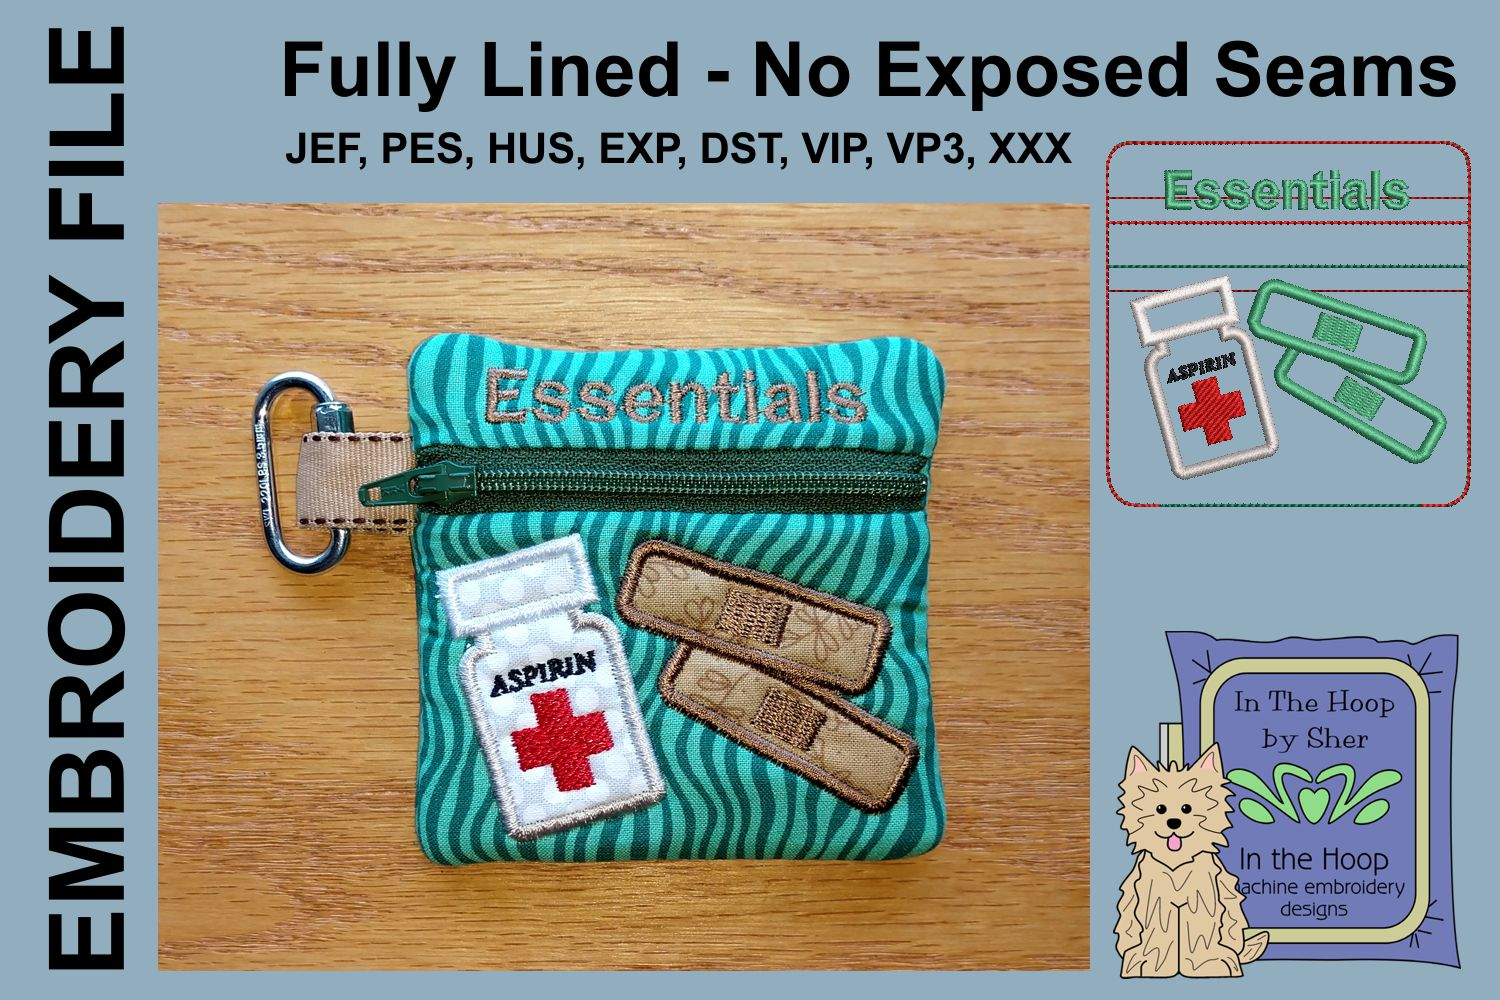 First Aid Mini Zipper Bag / Fully Lined, 4X4 HOOP example image 1